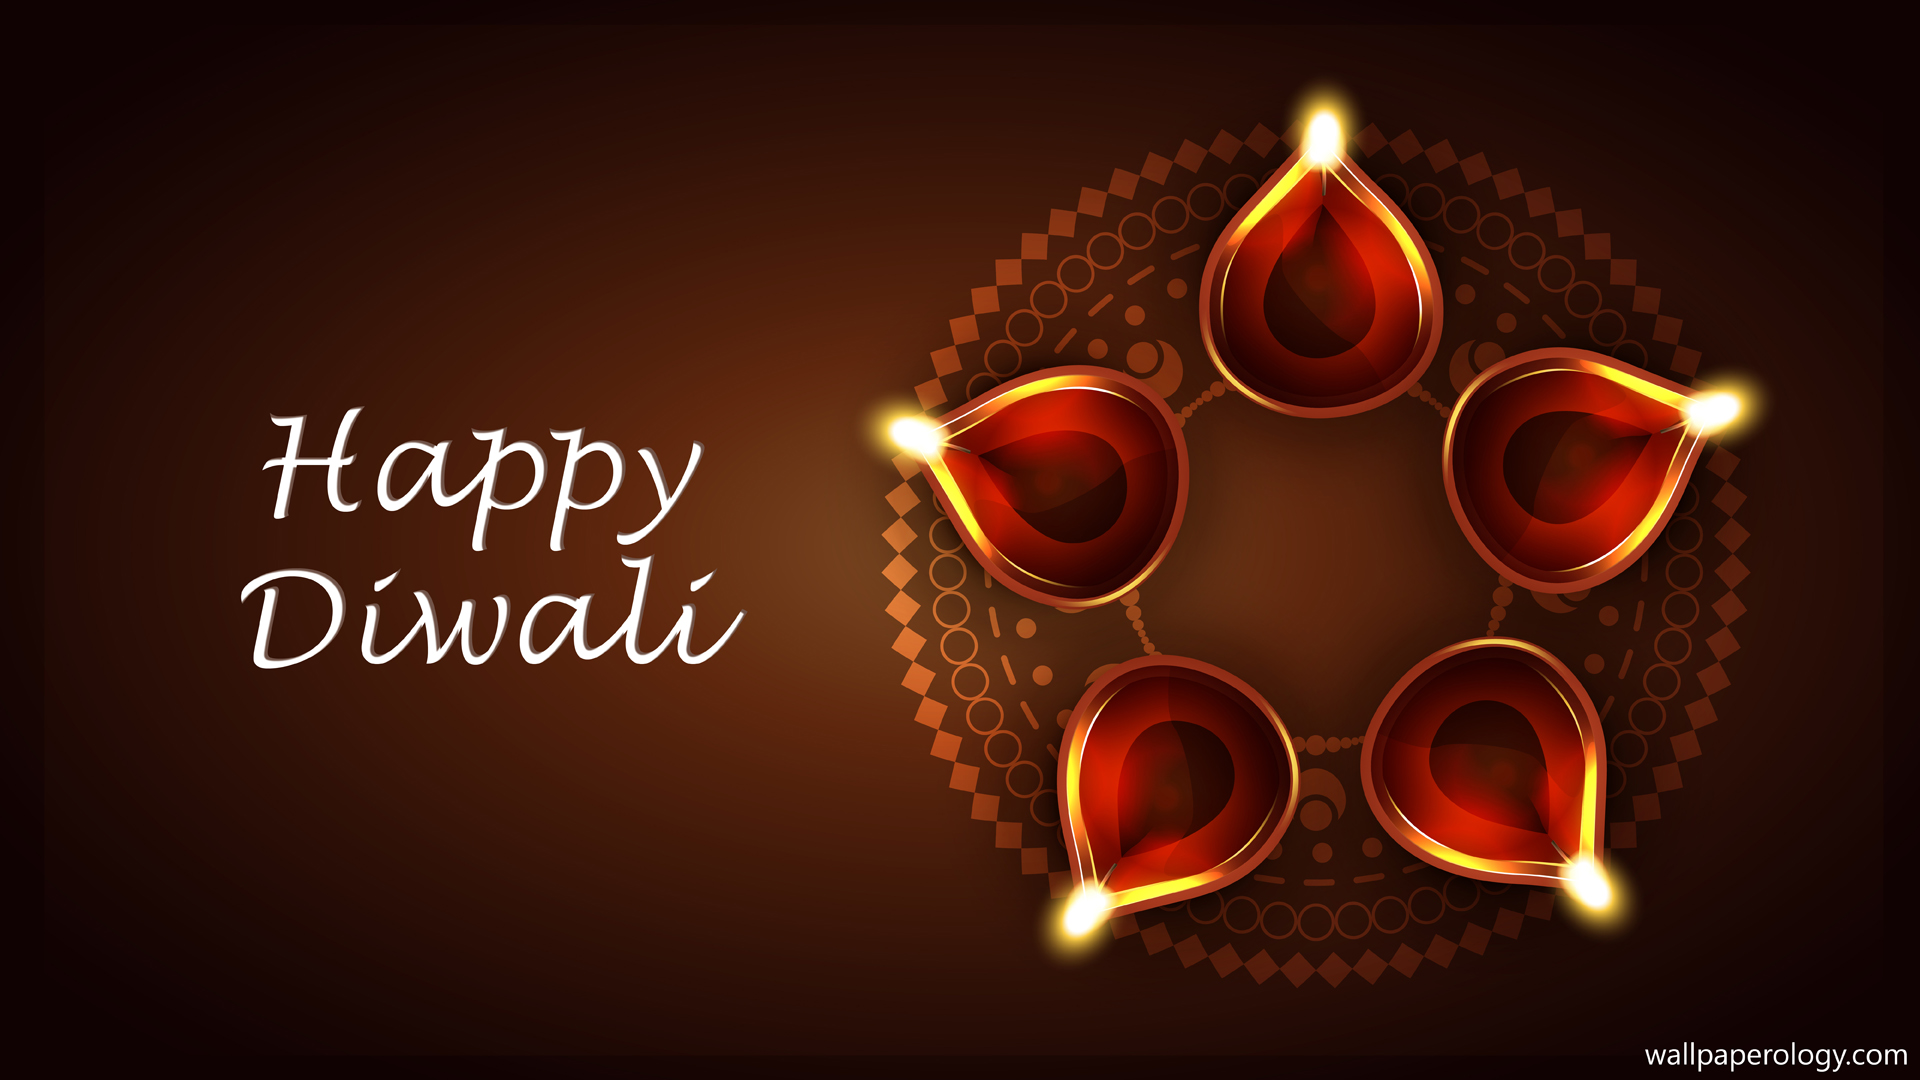 Diwali Wallpaper: 45 Beautiful HD Diwali Images And Wallpaper To Feel The